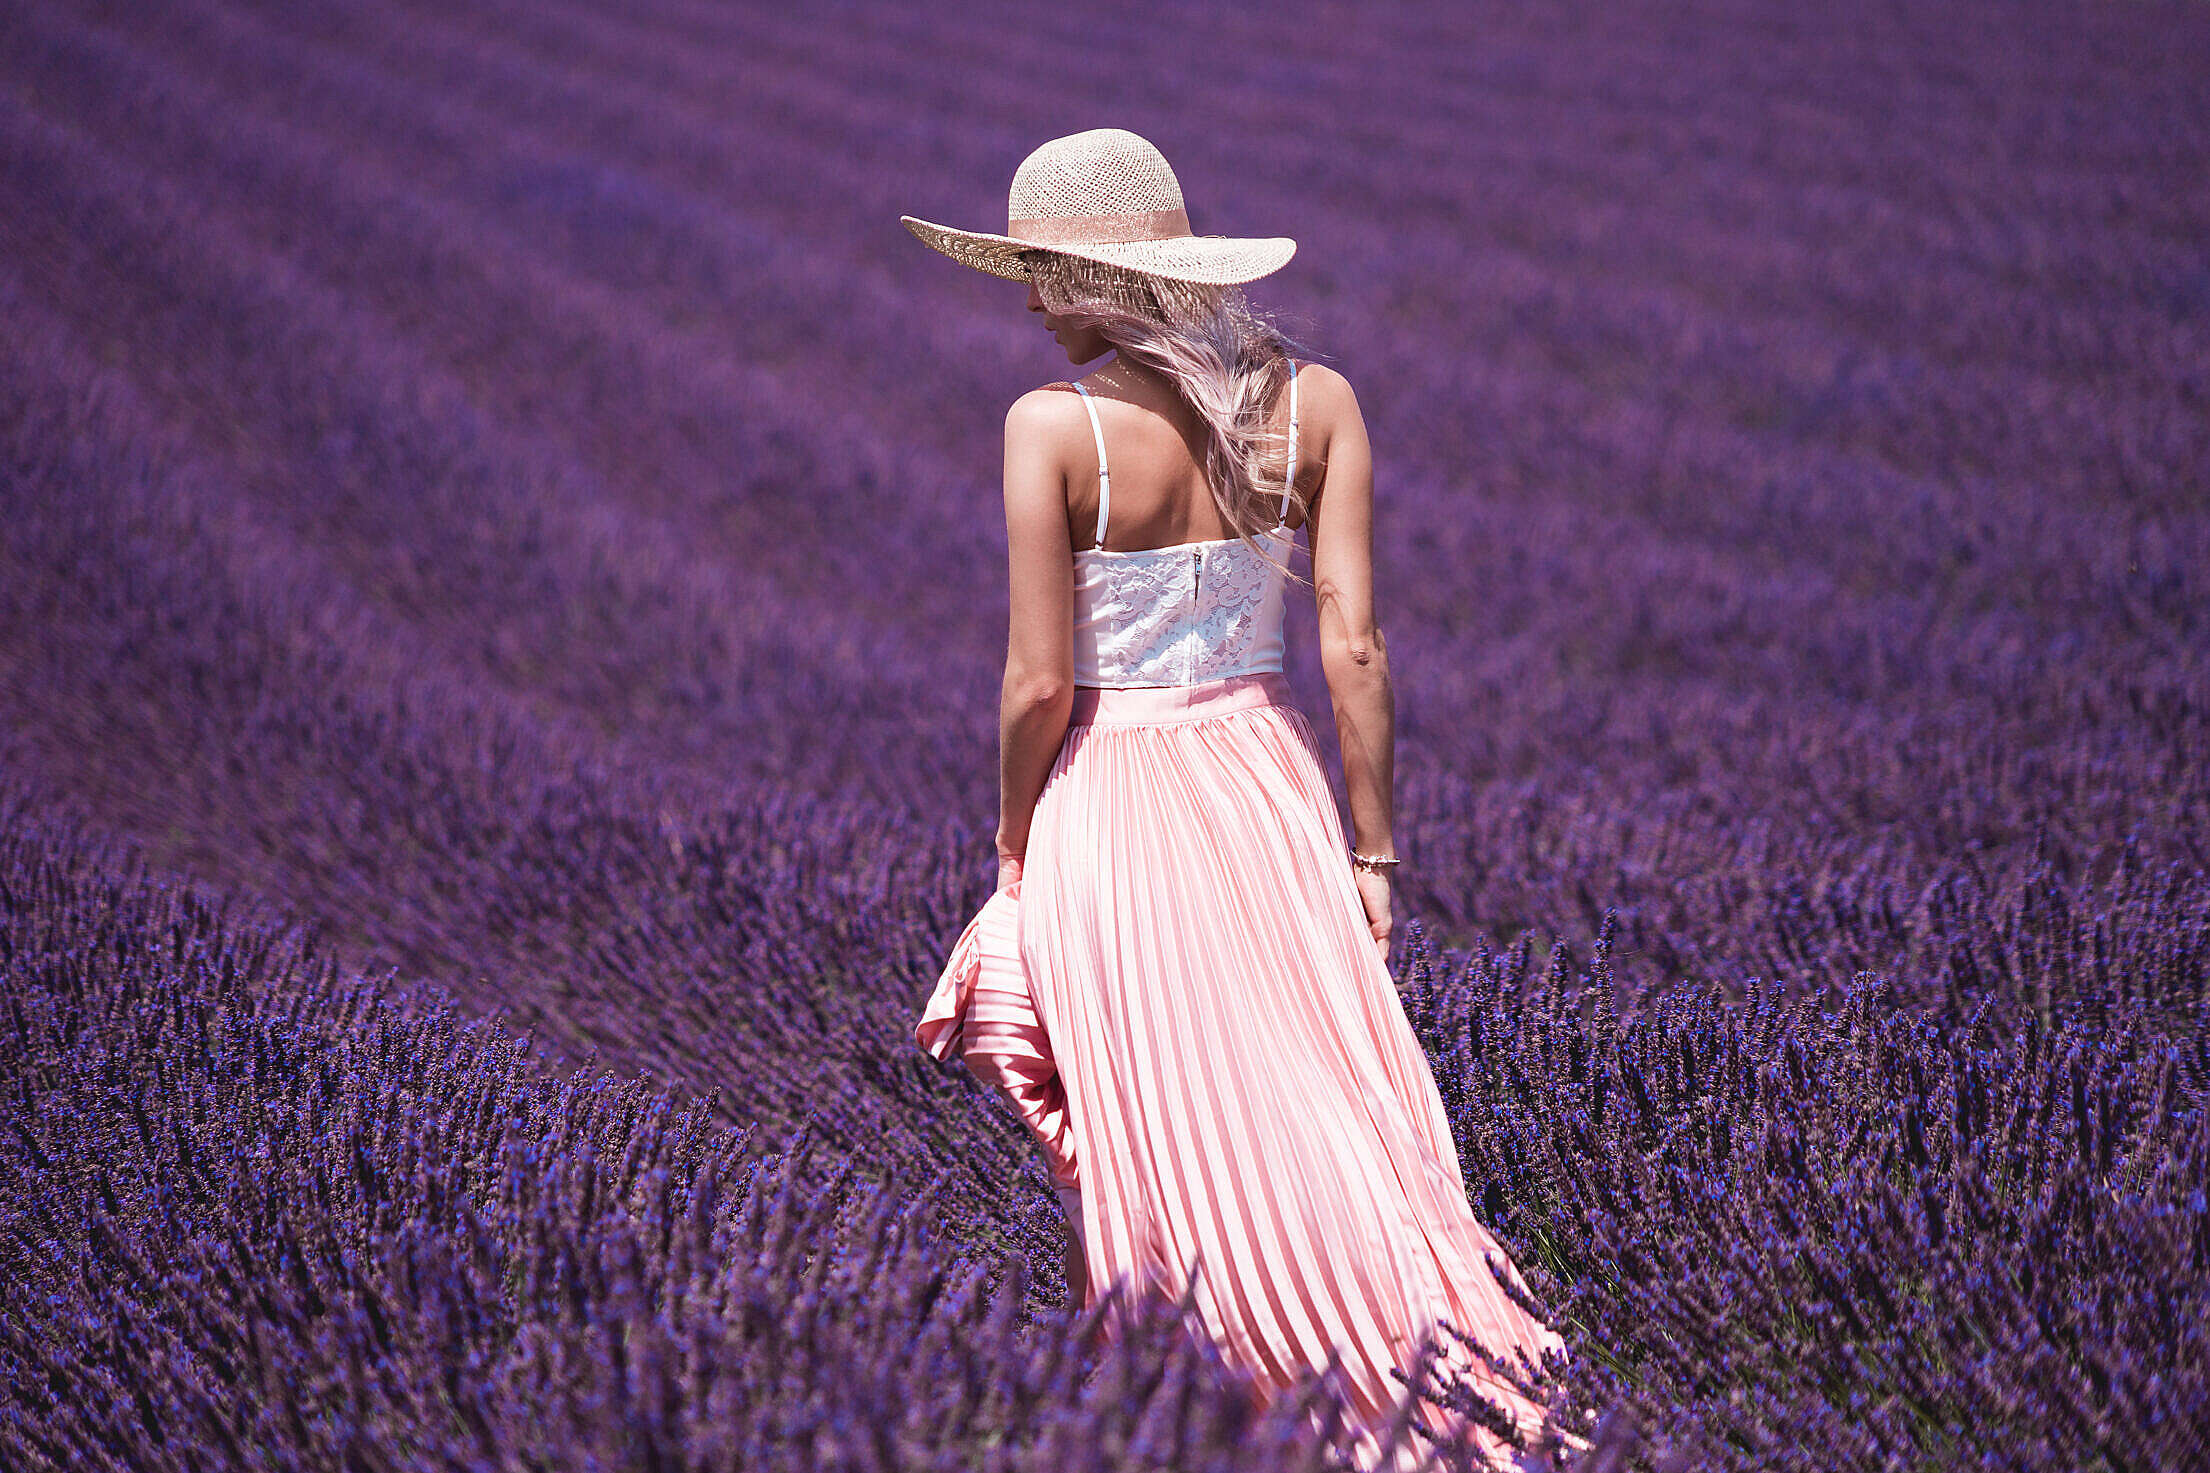 Lavender Field and Beautiful Woman Free Stock Photo